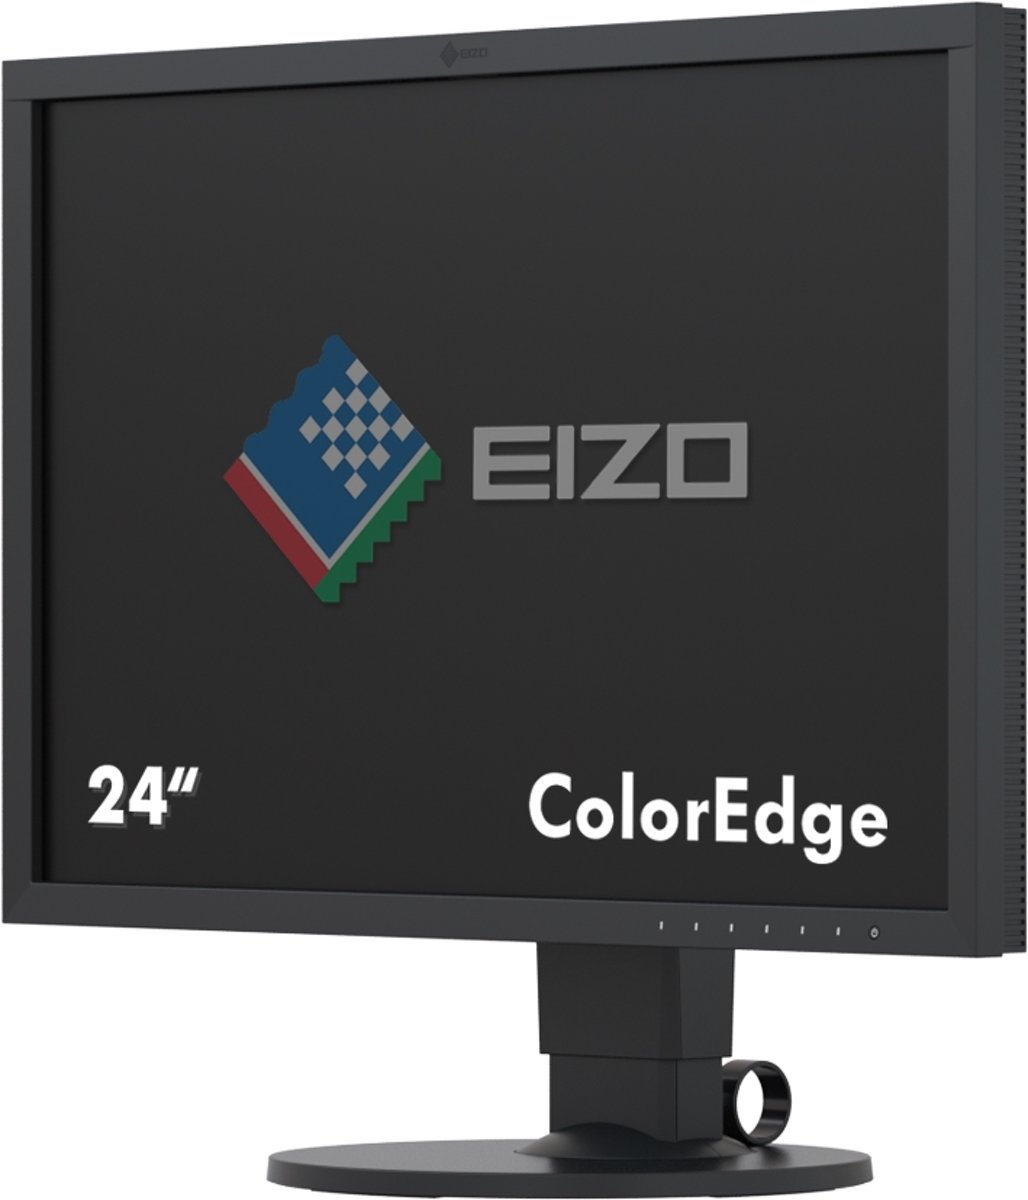 Eizo ColorEdge CS2420 - IPS Monitor